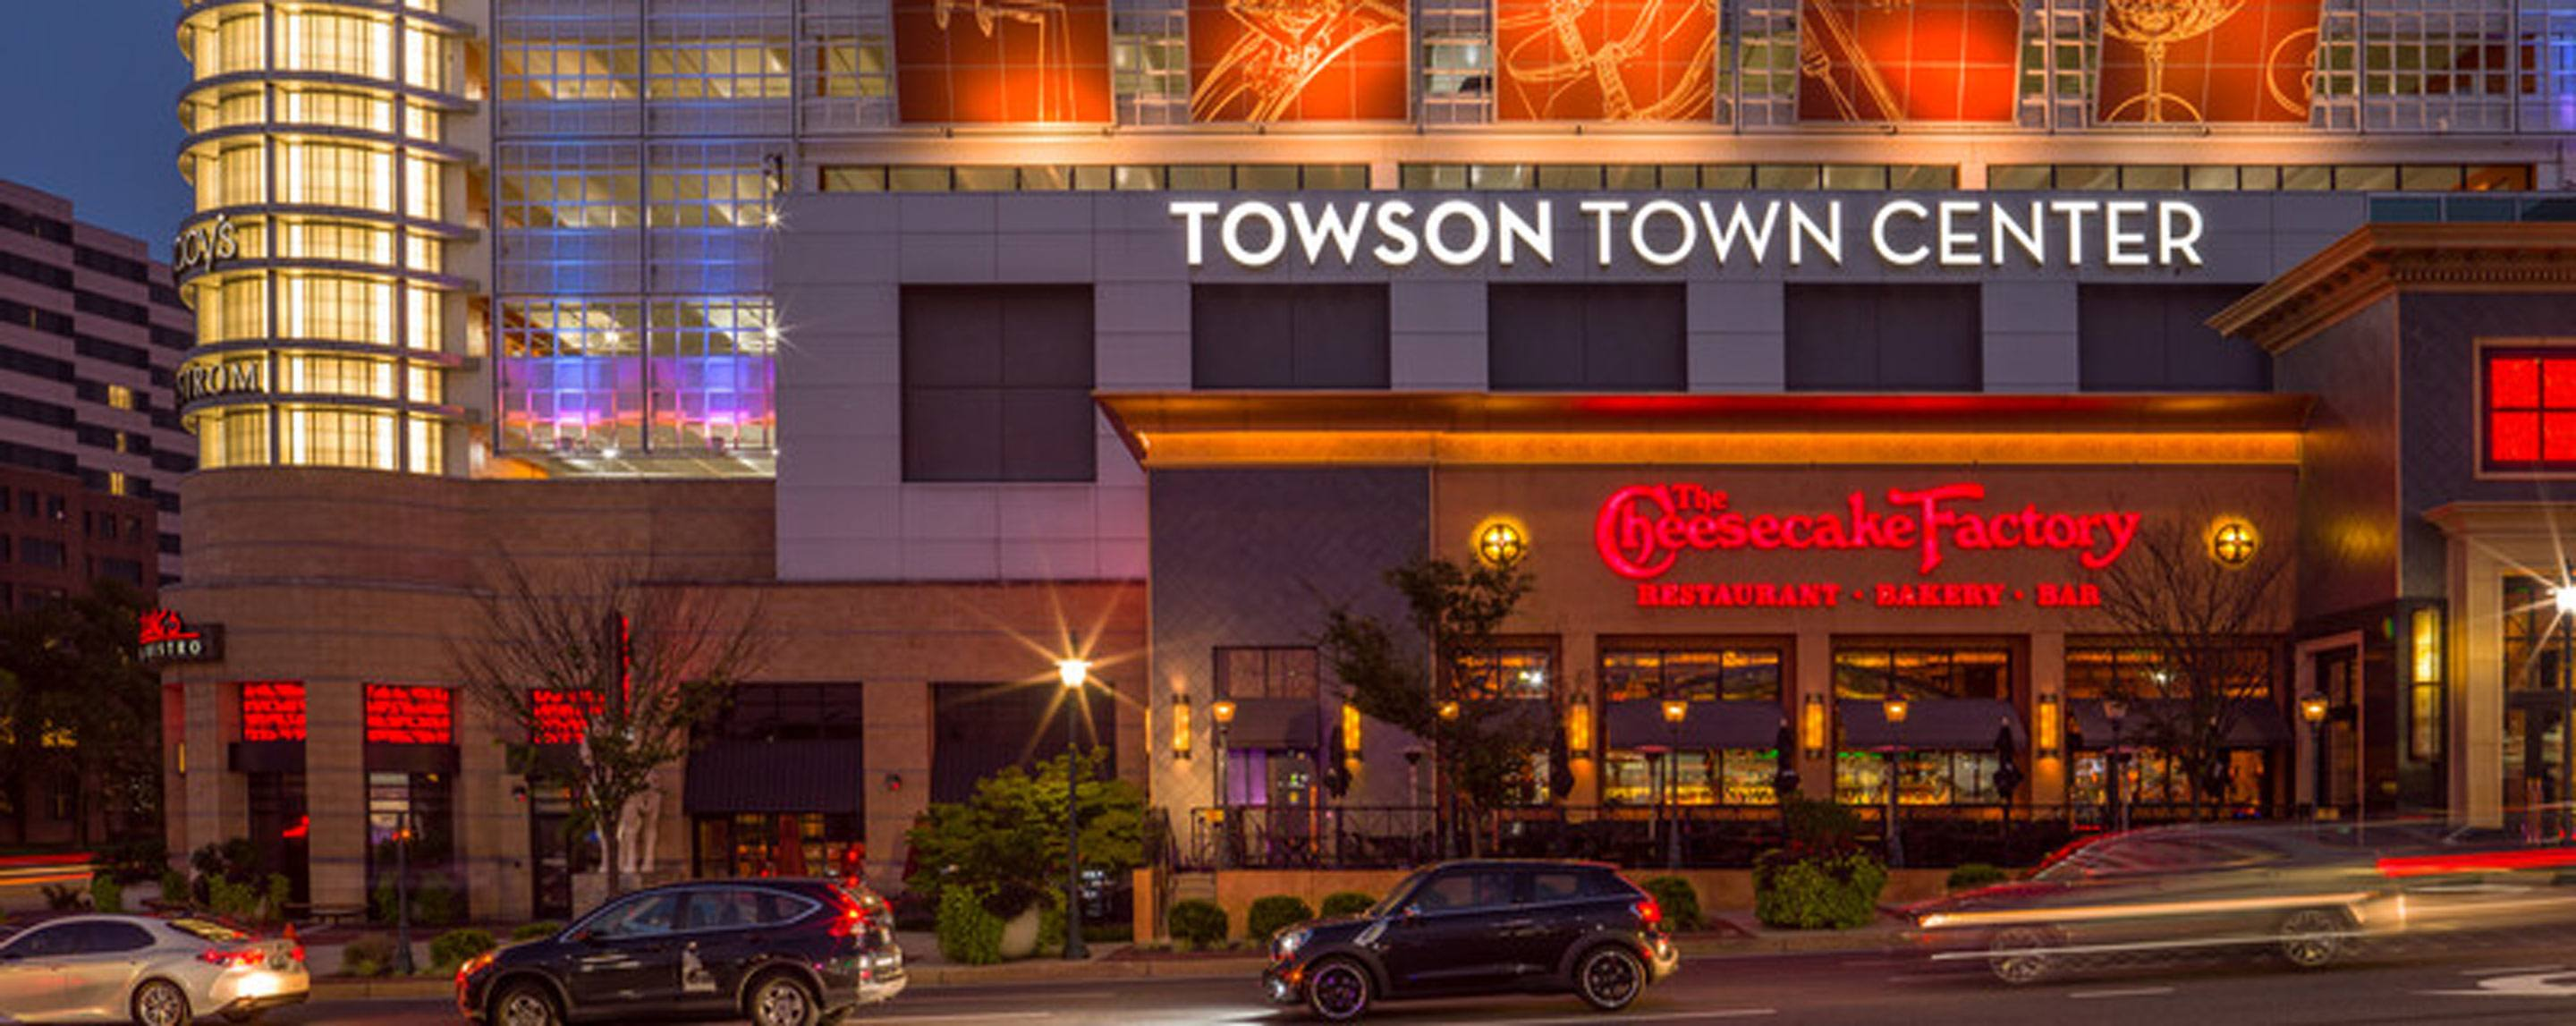 Cheesecake Factory's red sign is illuminated underneath the sign for the Townson Town Center at twil